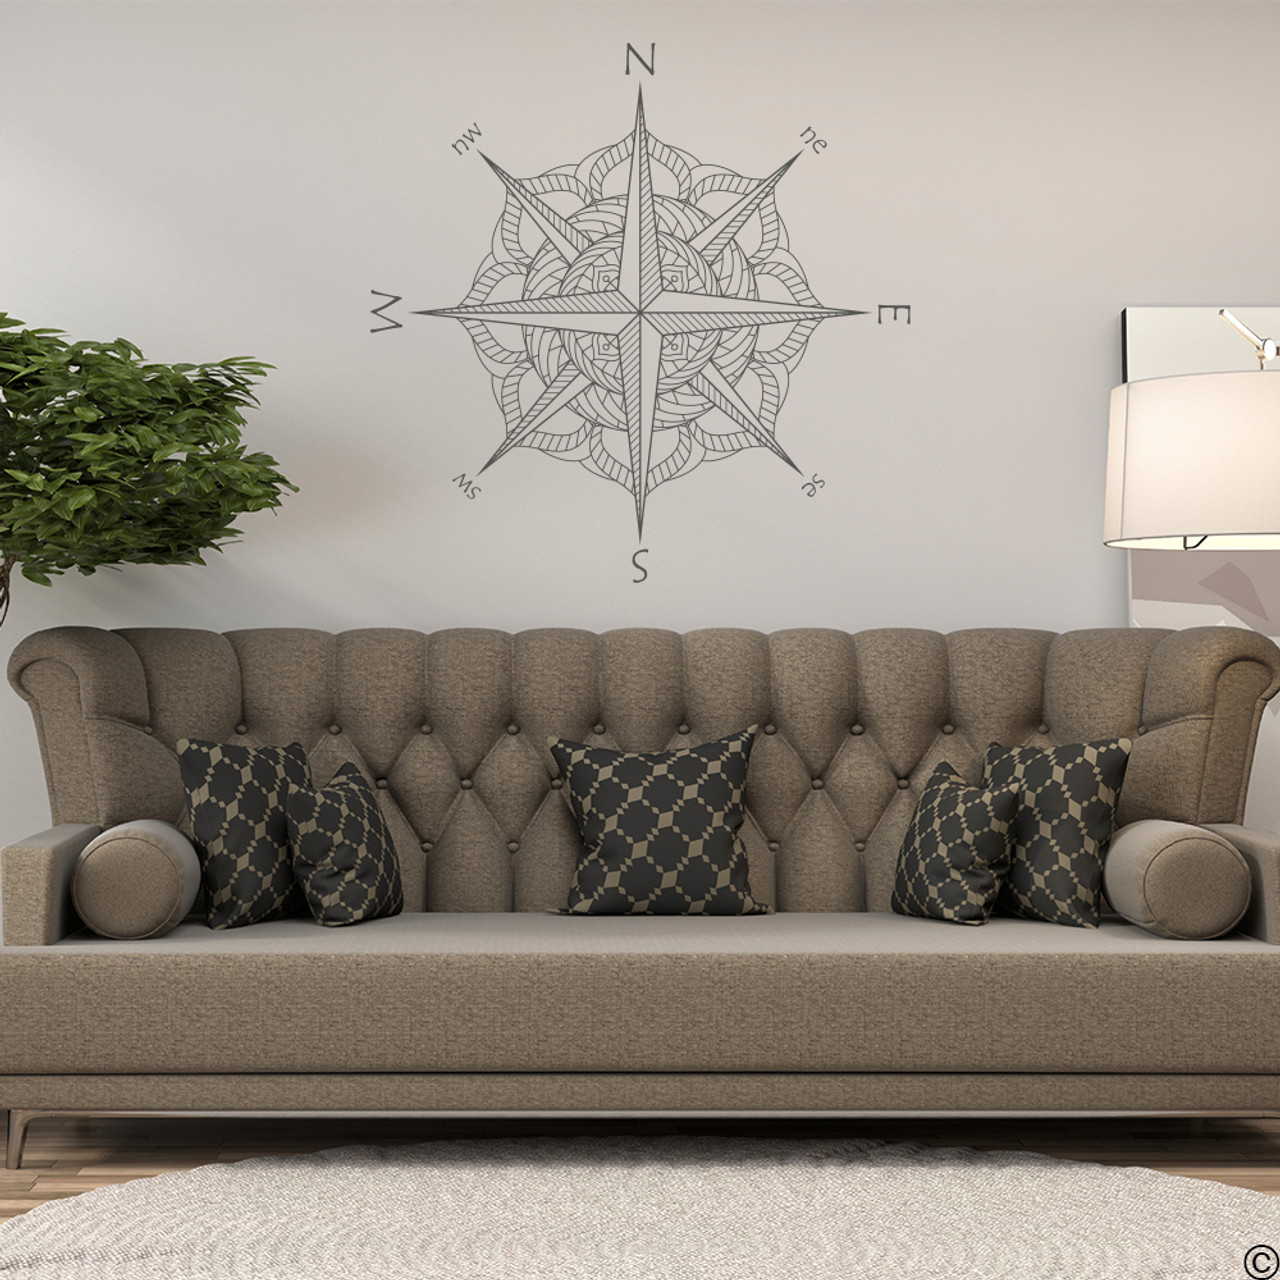 The Catalina compass rose wall or ceiling decal in black